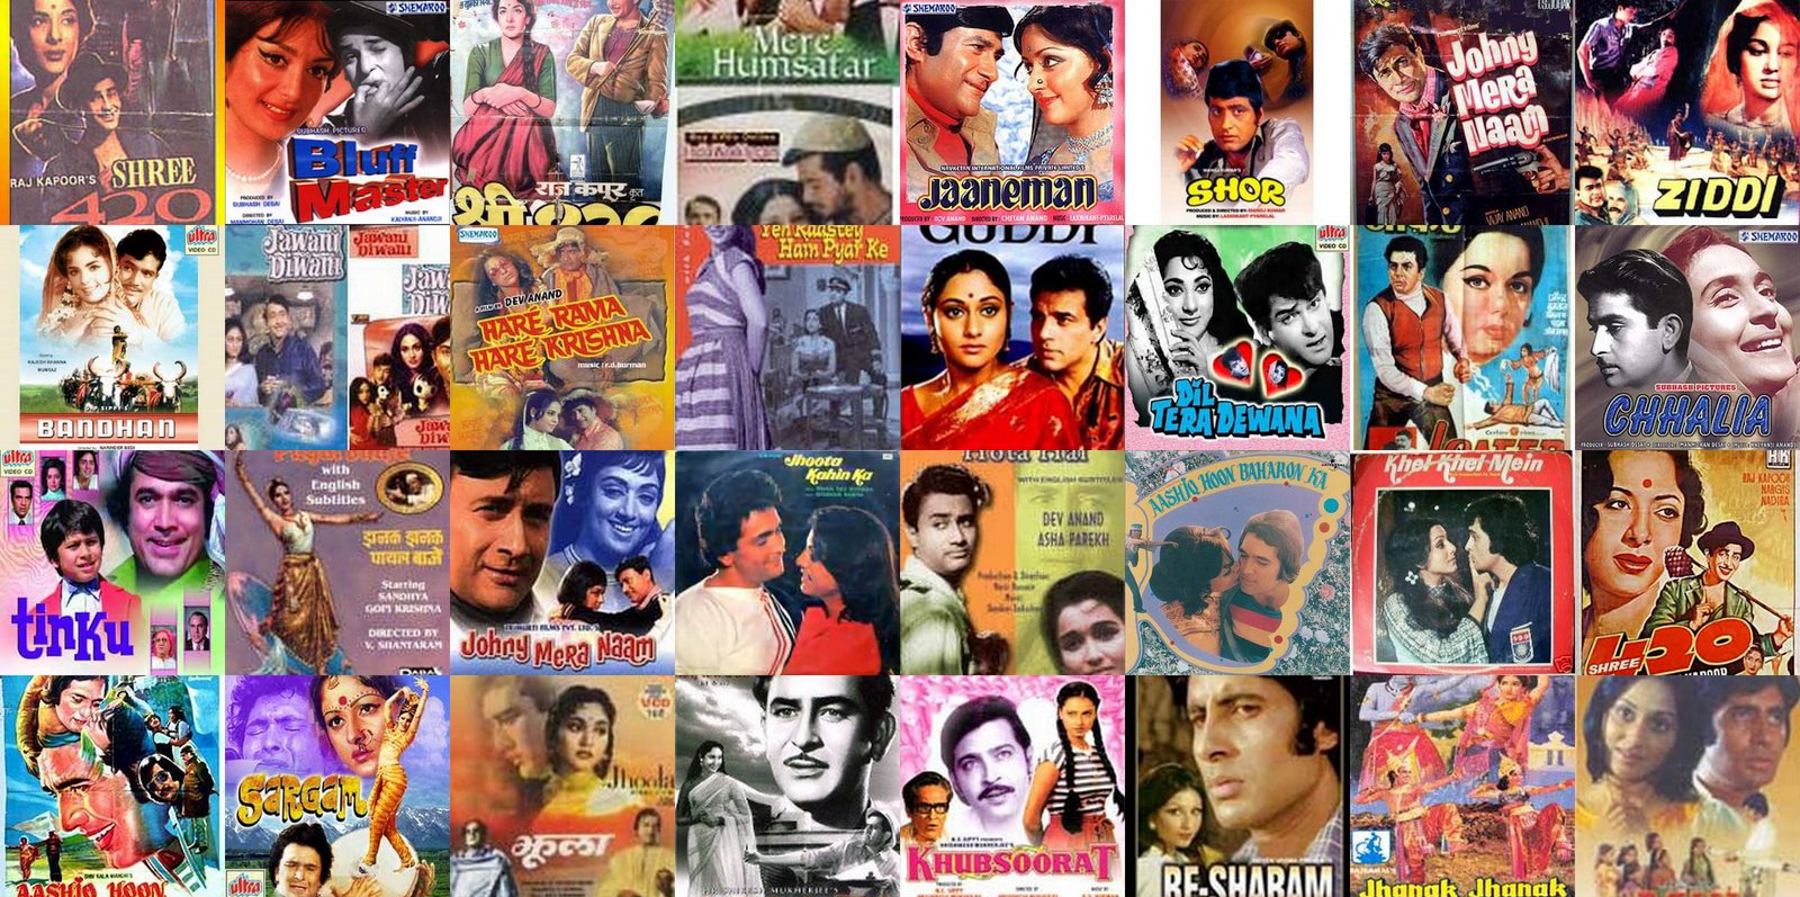 Collage_of_Hindi_movie_posters-1